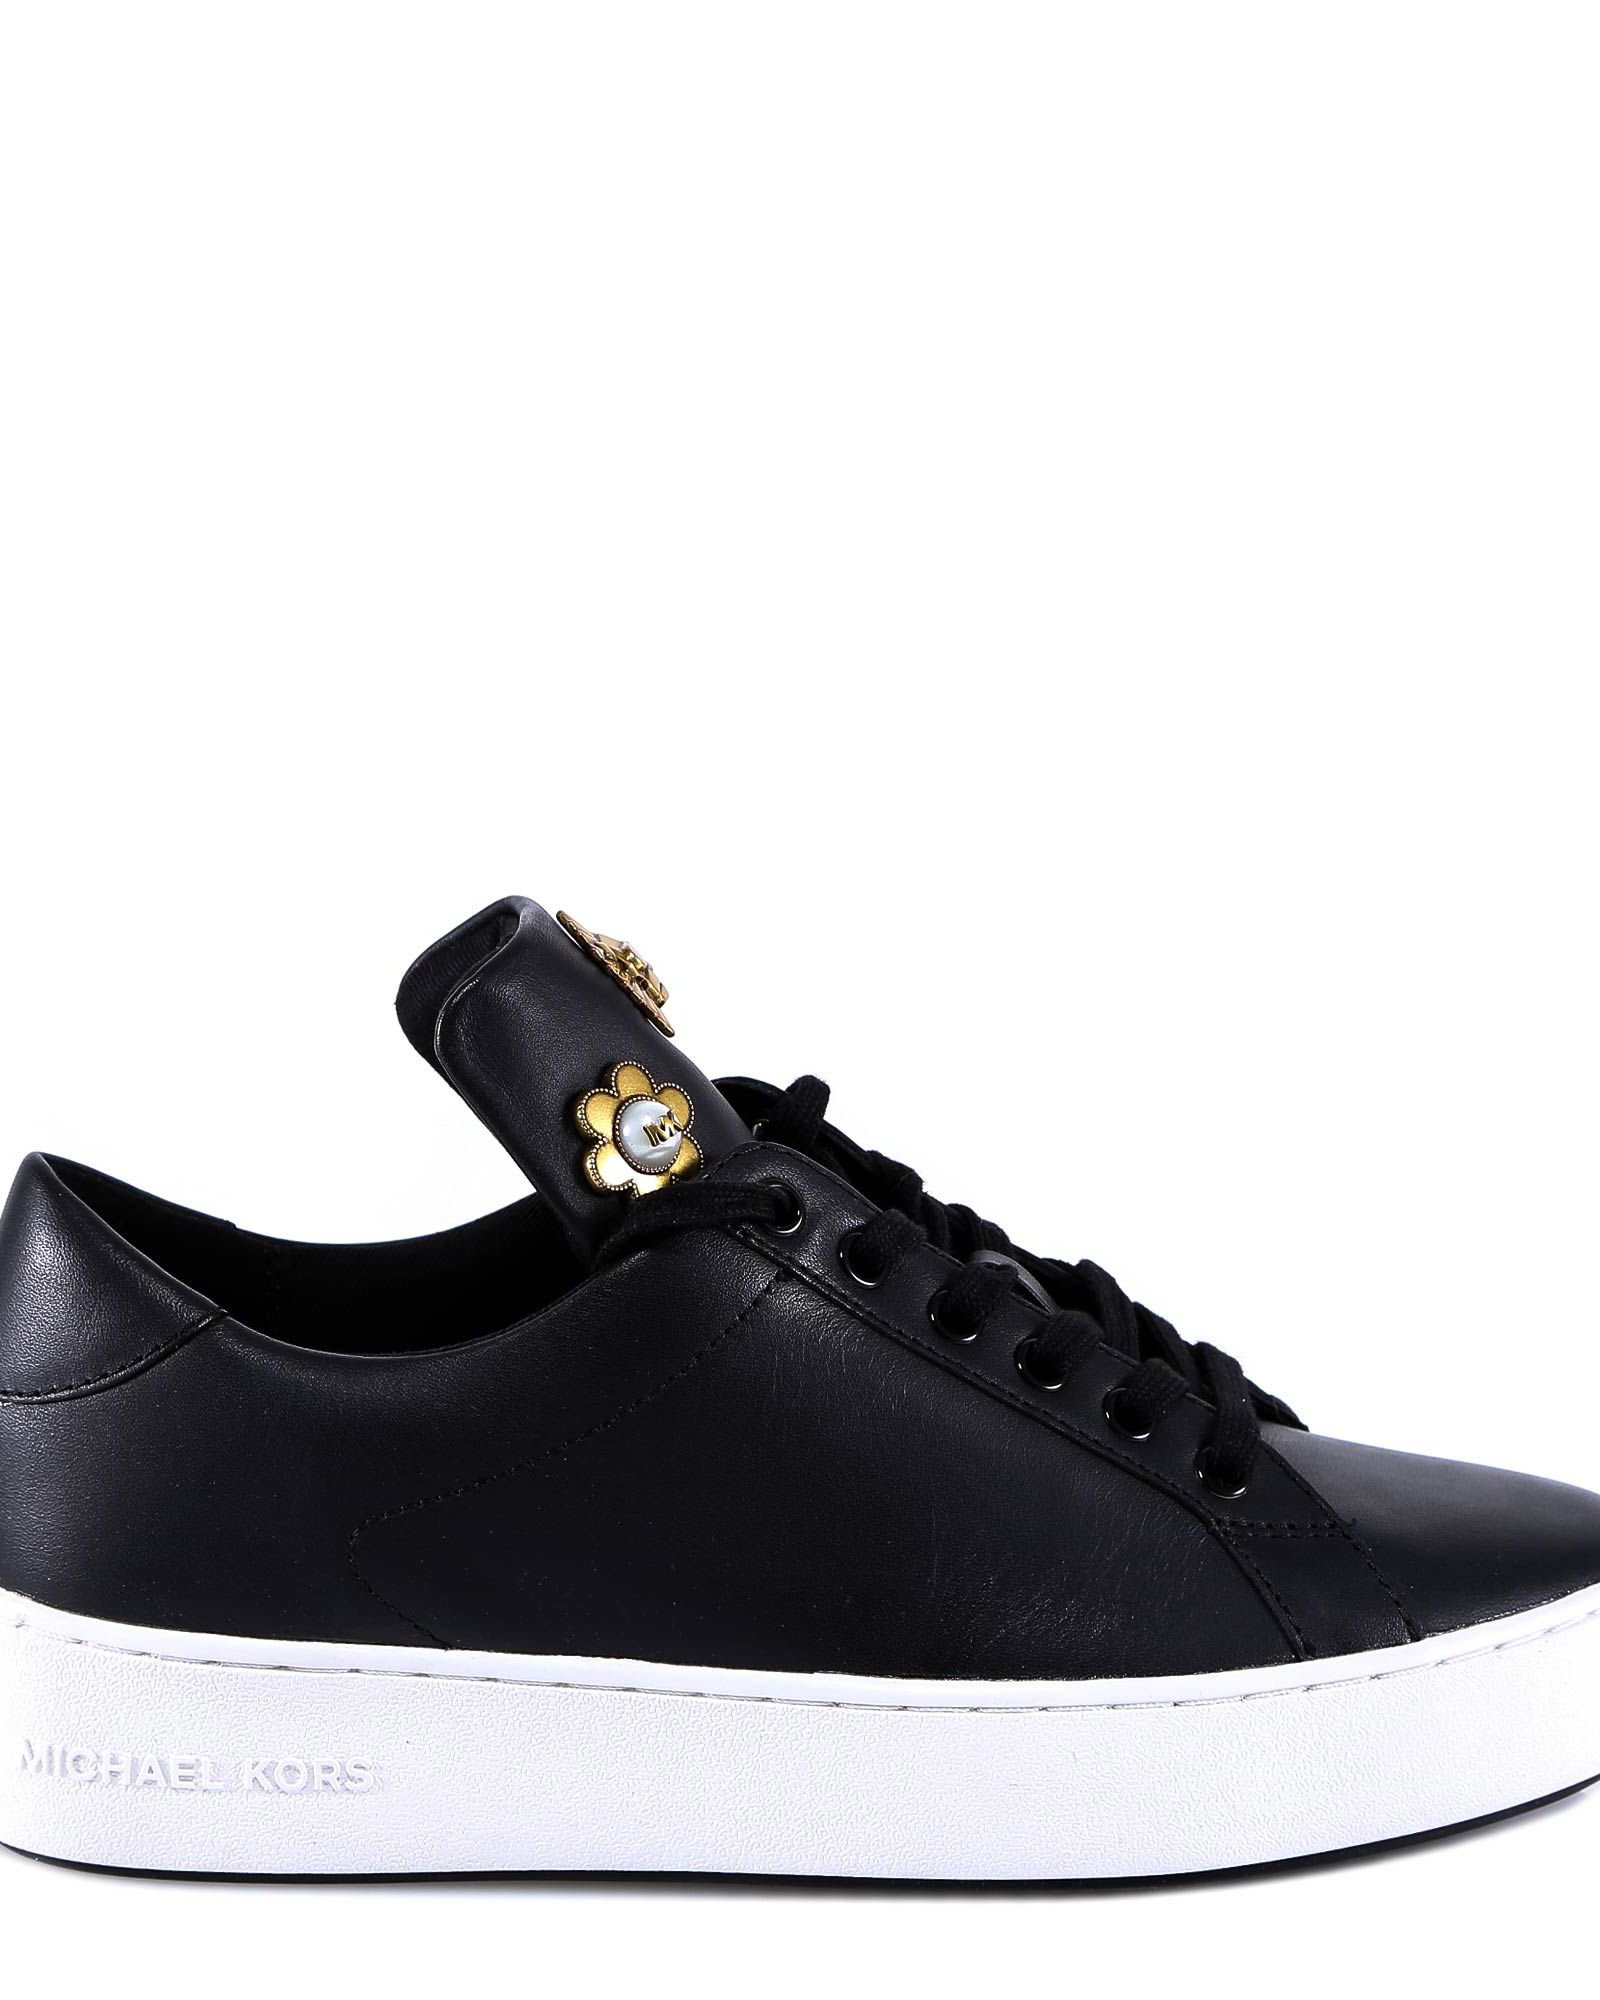 Michael Kors Mindy Lace Up Sneakers